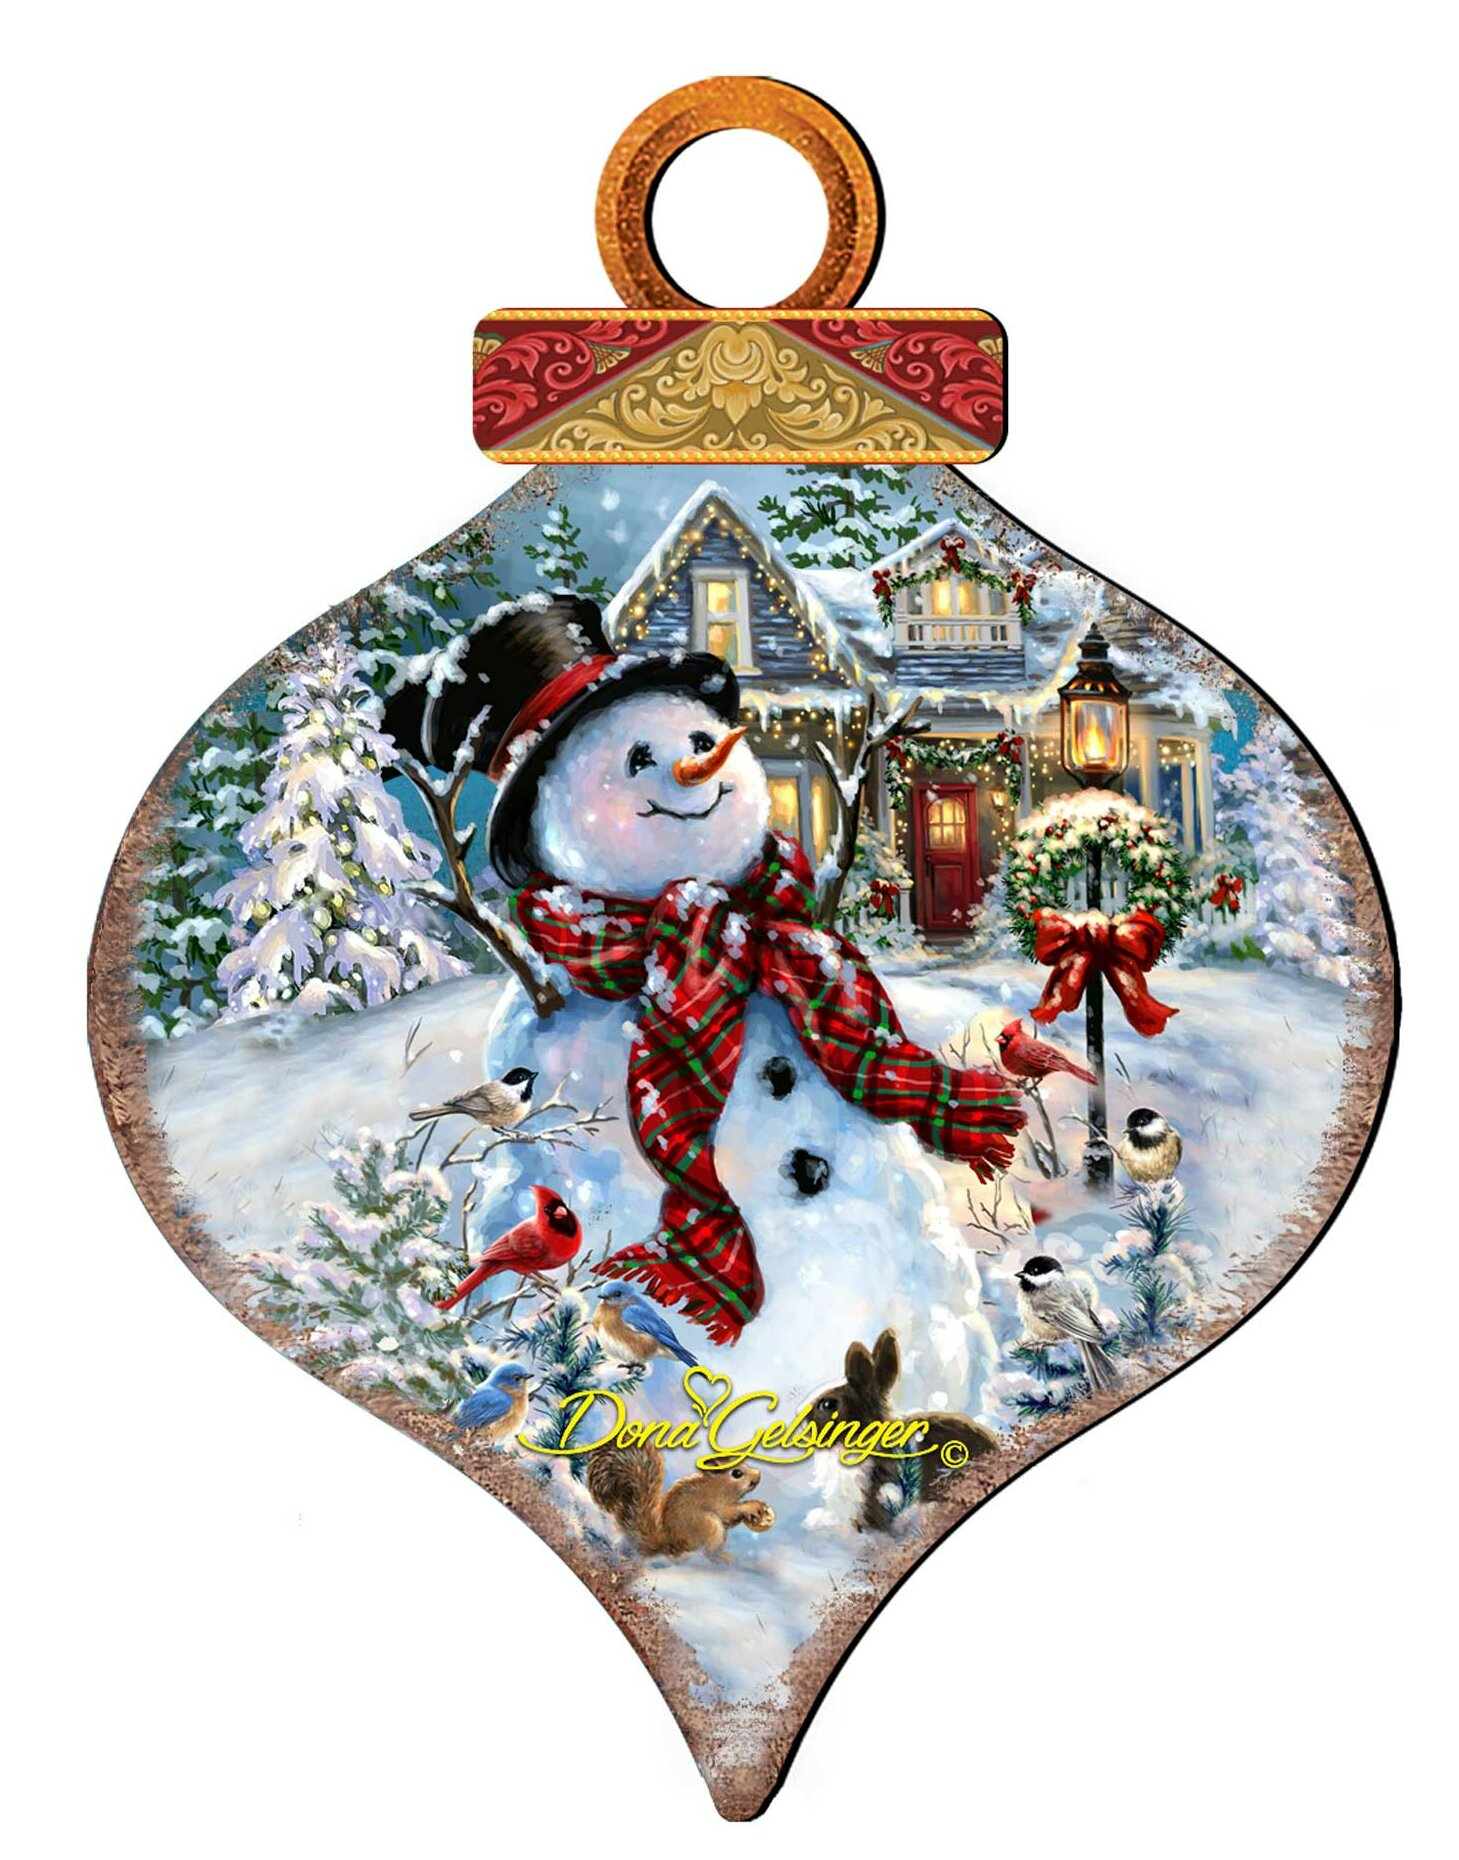 Designocracy An Old Fashioned Christmas Drop Holiday Shaped Ornament Wayfair